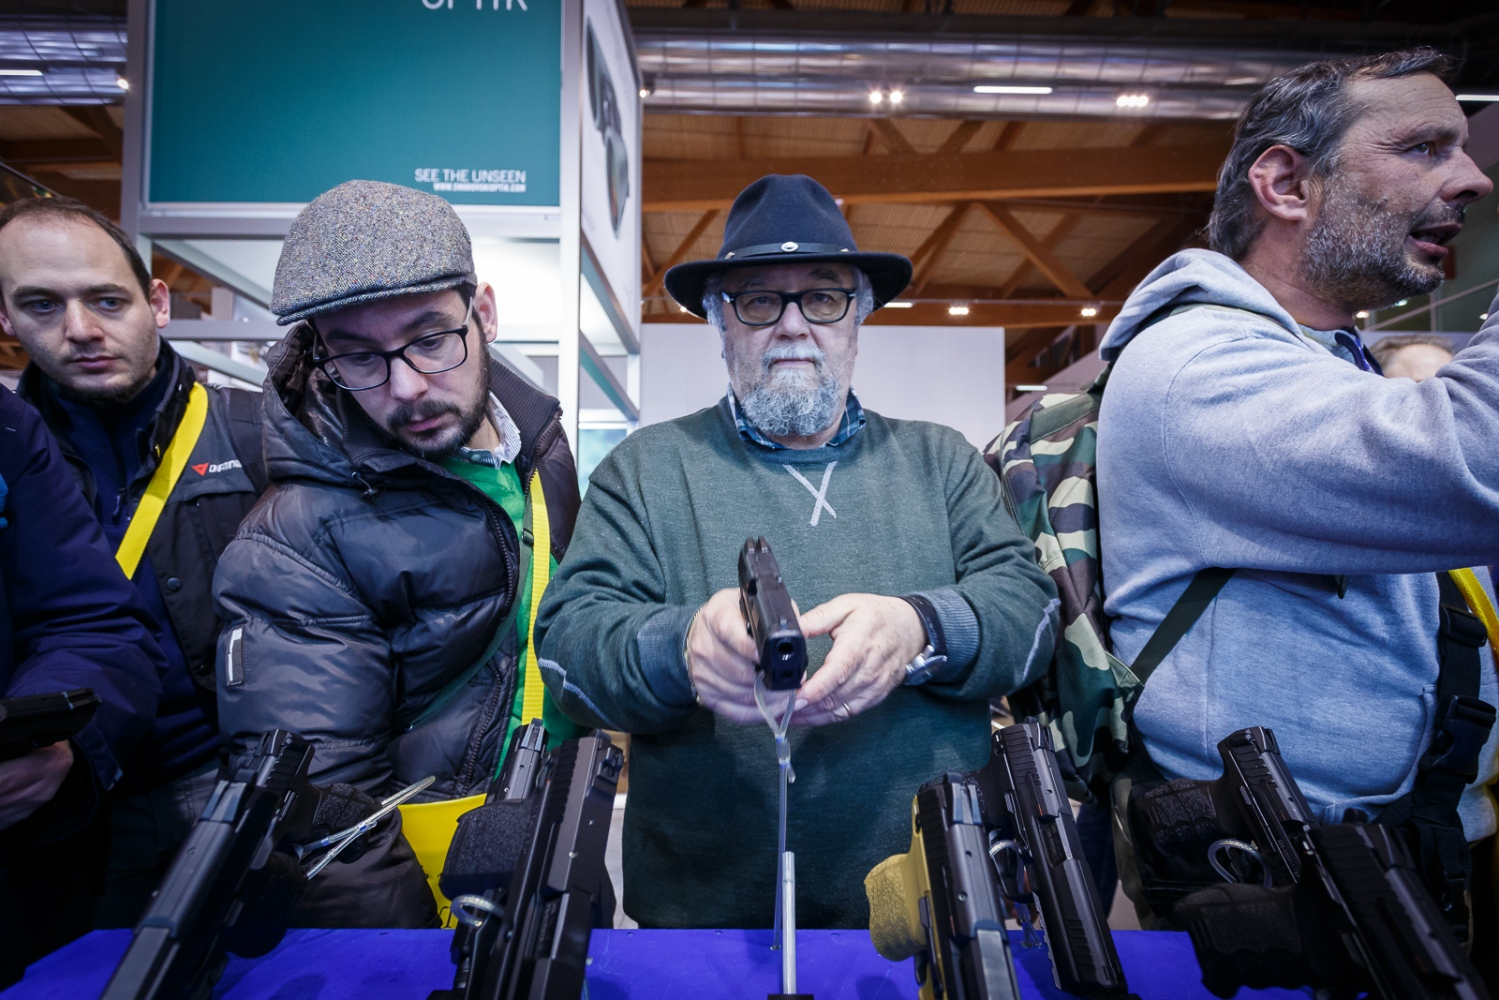 The Hit Show 2016 Vicenza, Italy. People at the Hit Show 2016, the most important gun fair in Italy